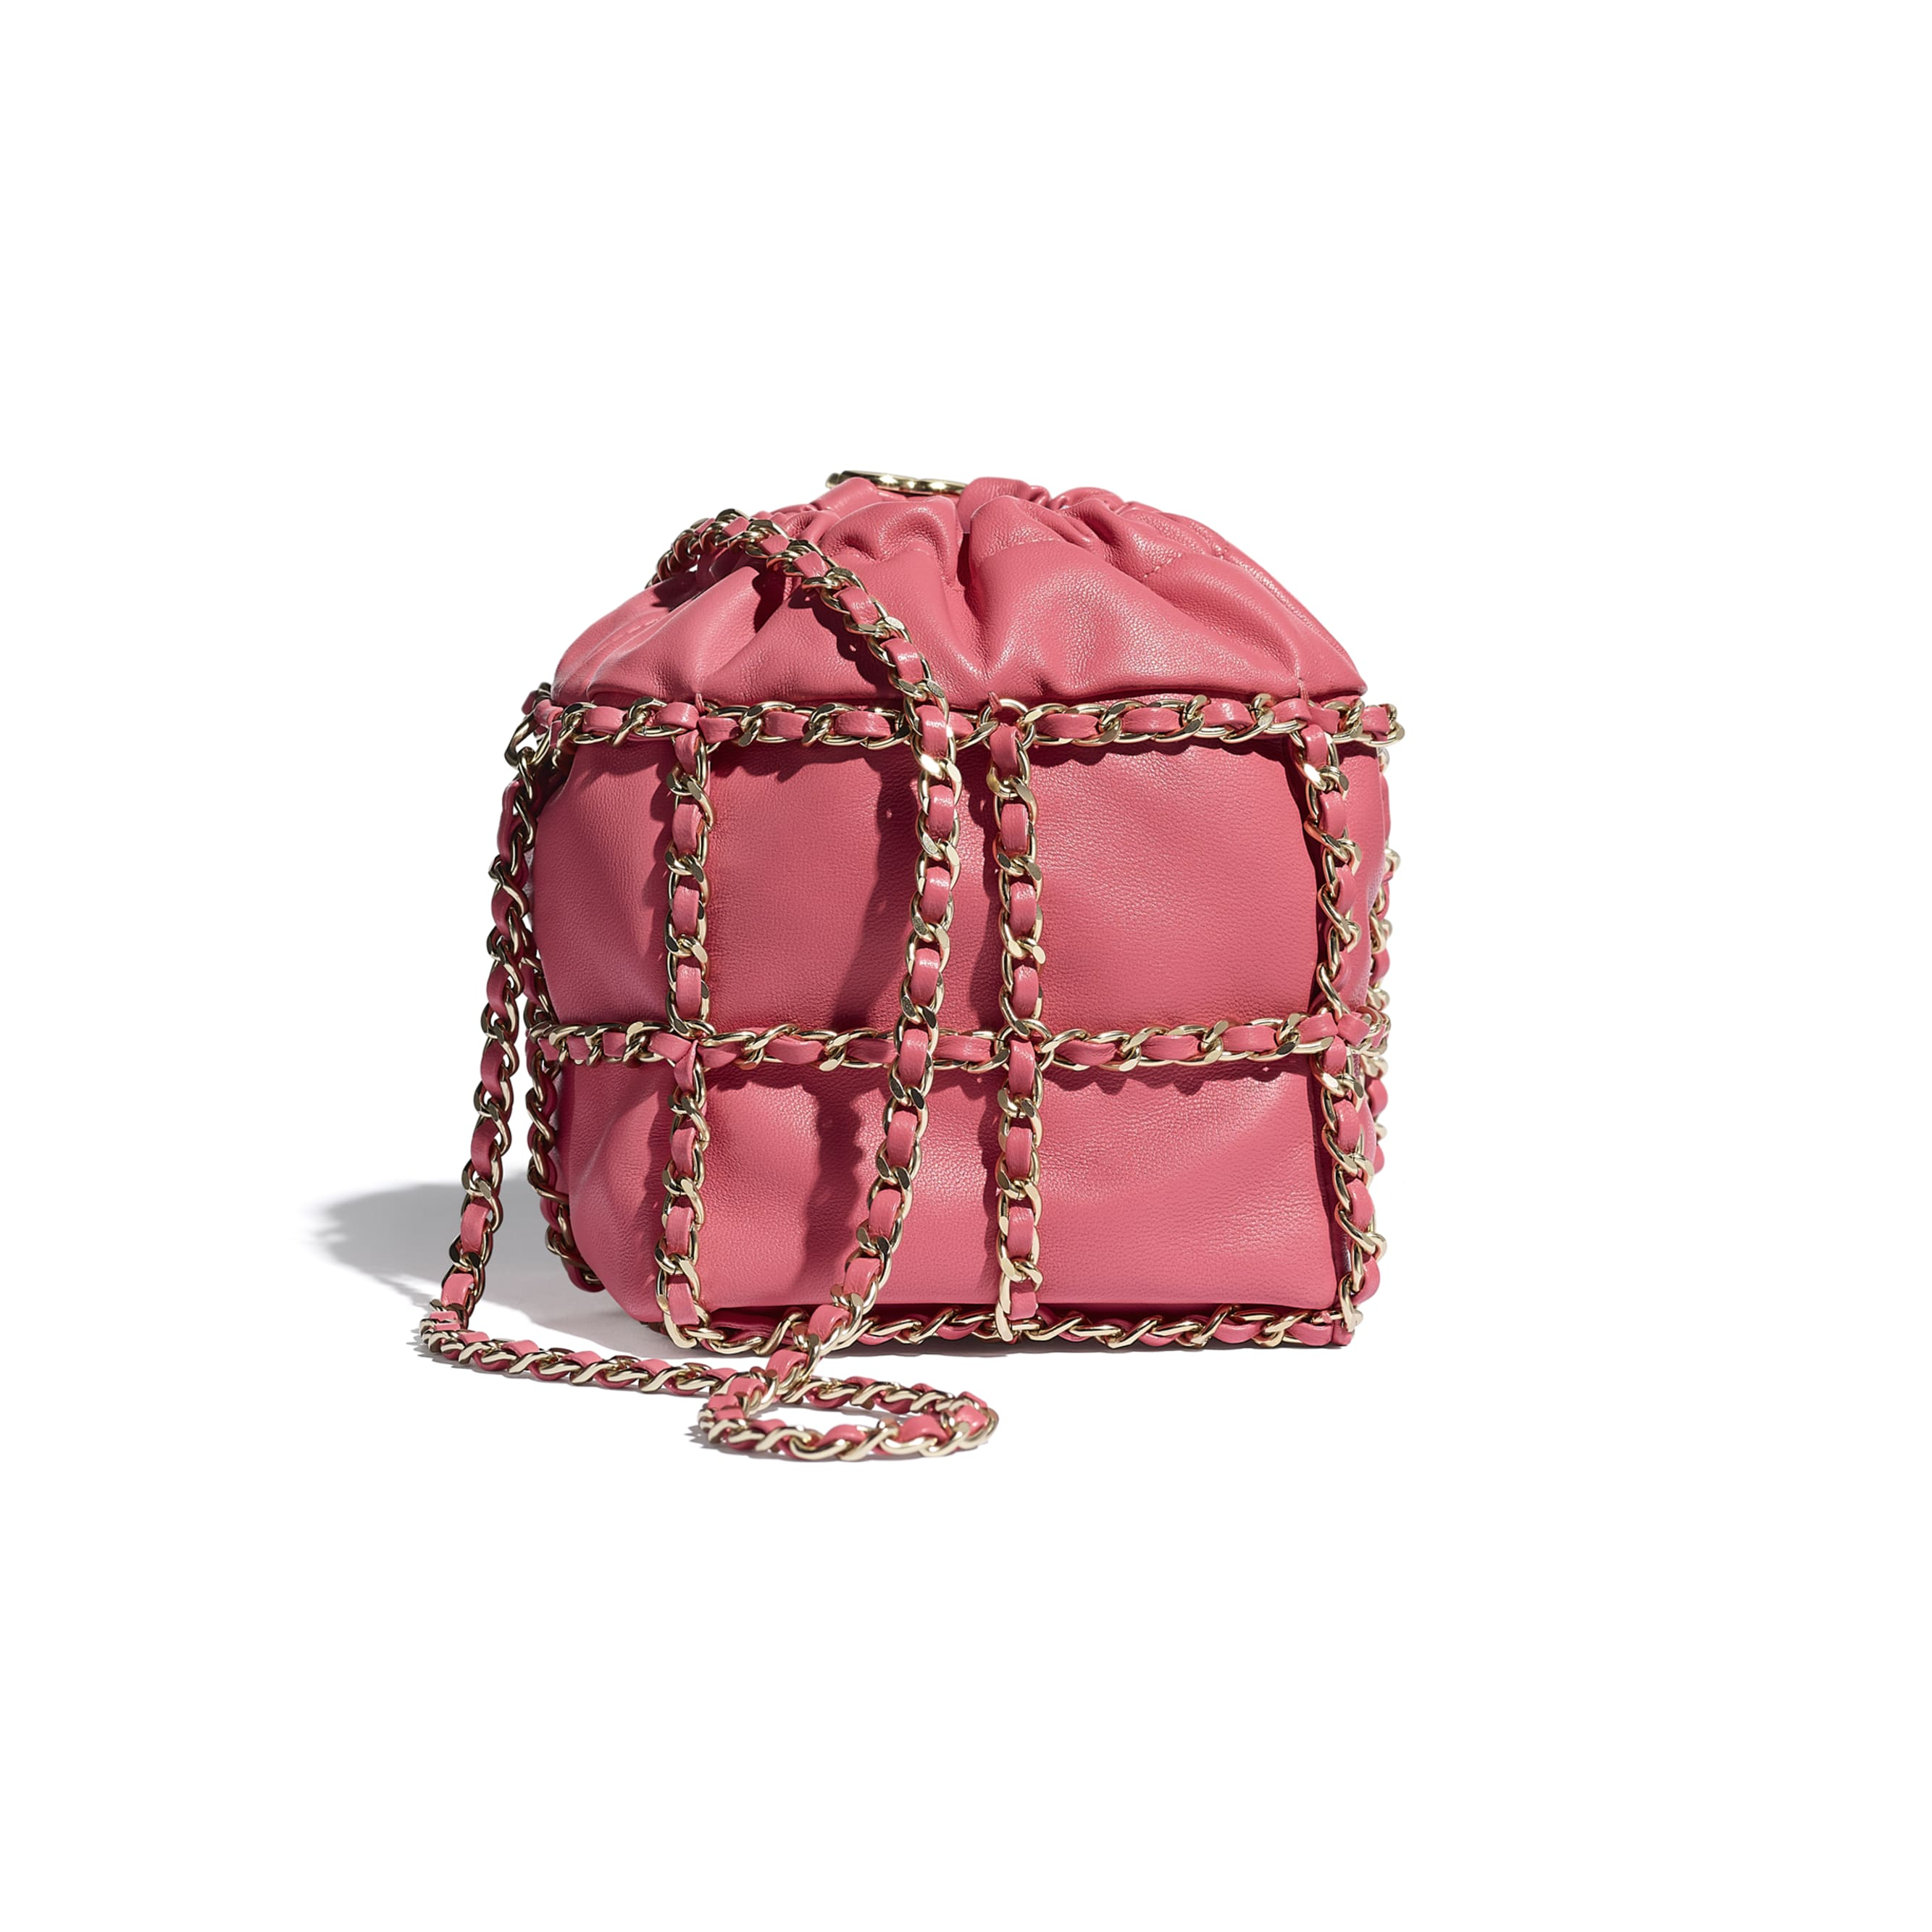 Small Drawstring Bag - Coral - Lambskin & Gold Metal  - CHANEL - Alternative view - see standard sized version